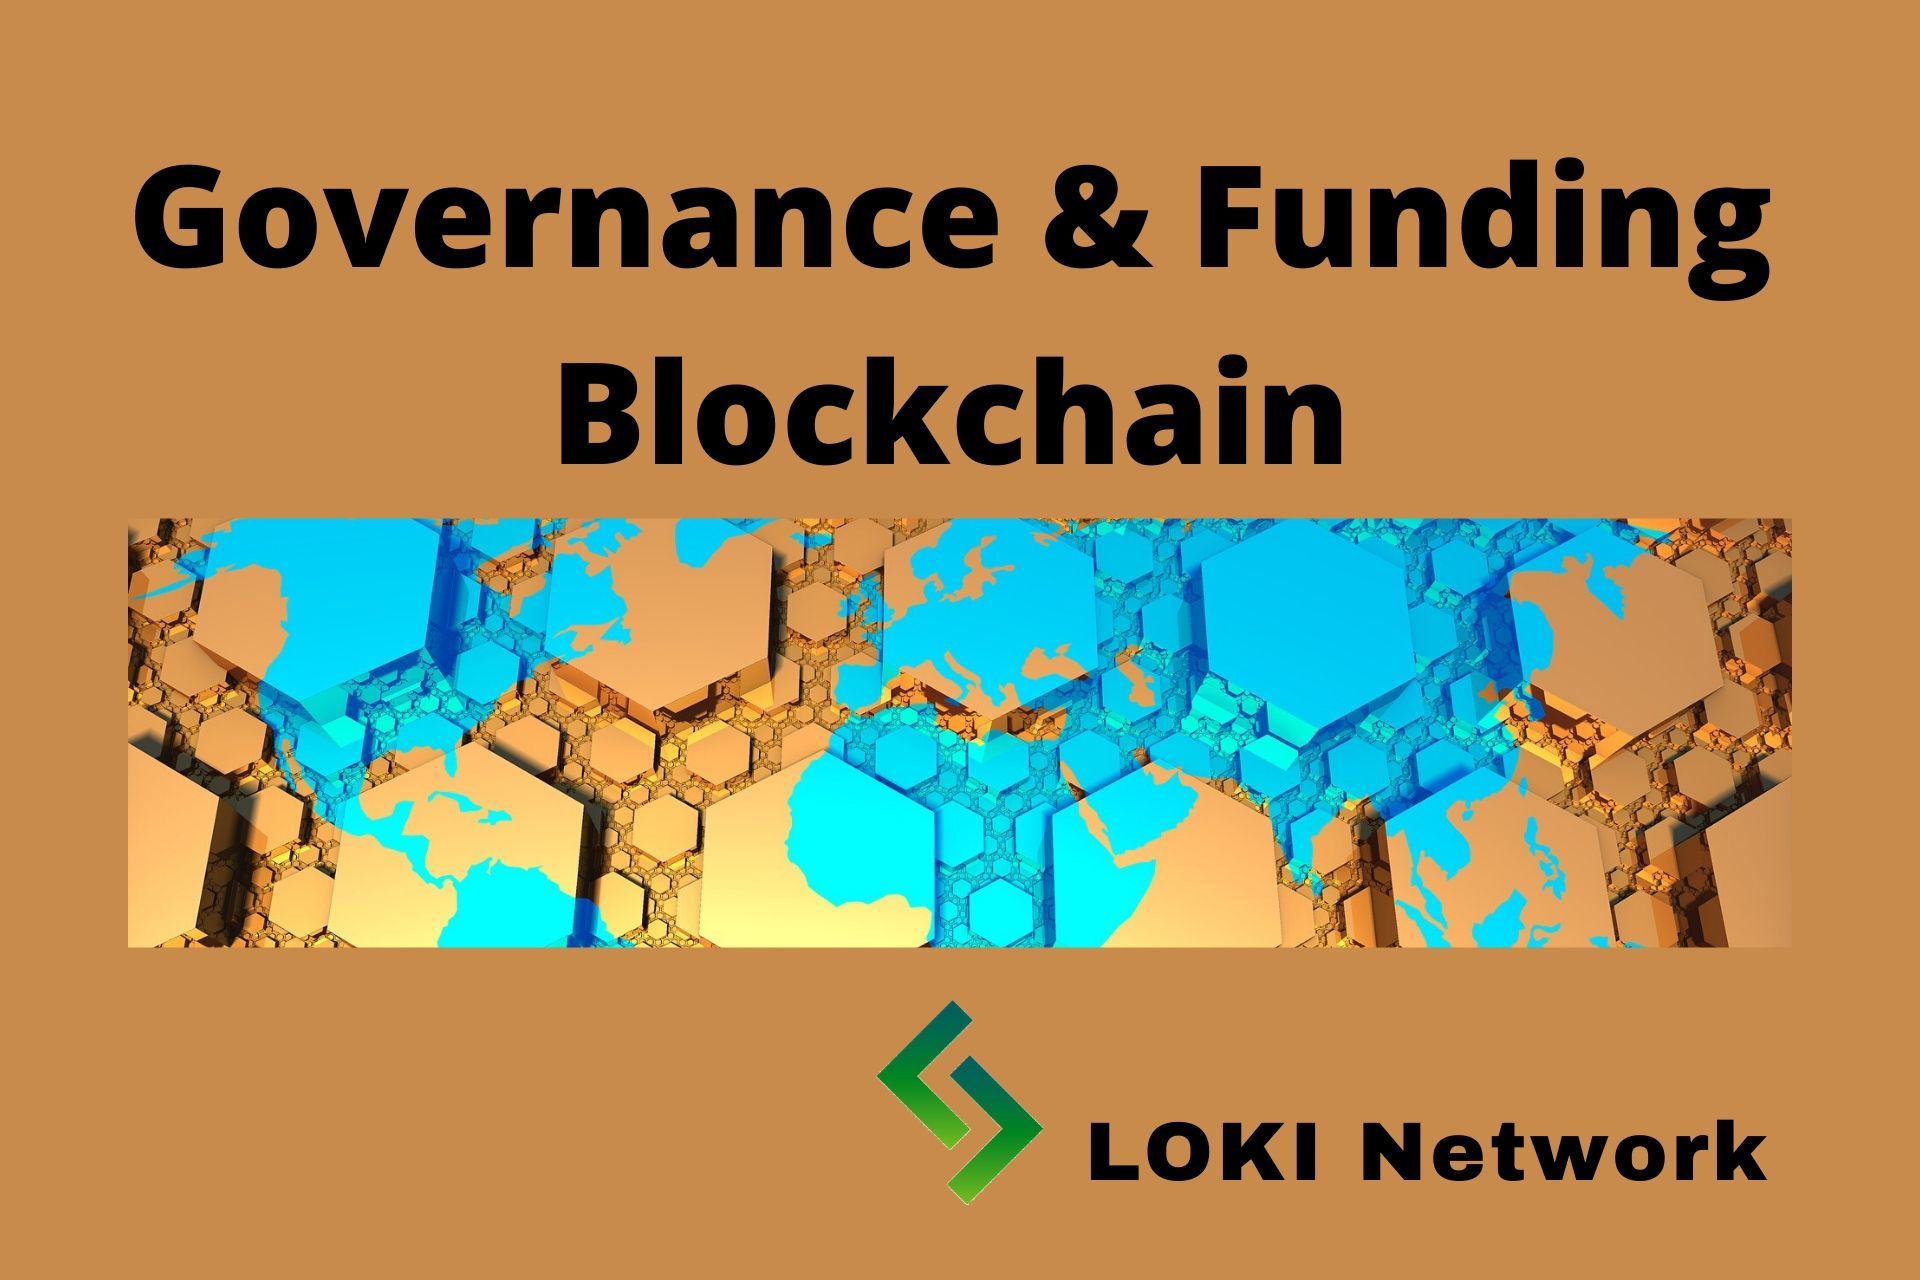 Types of Governance of Blockchain, Funding of Blockchain Projects